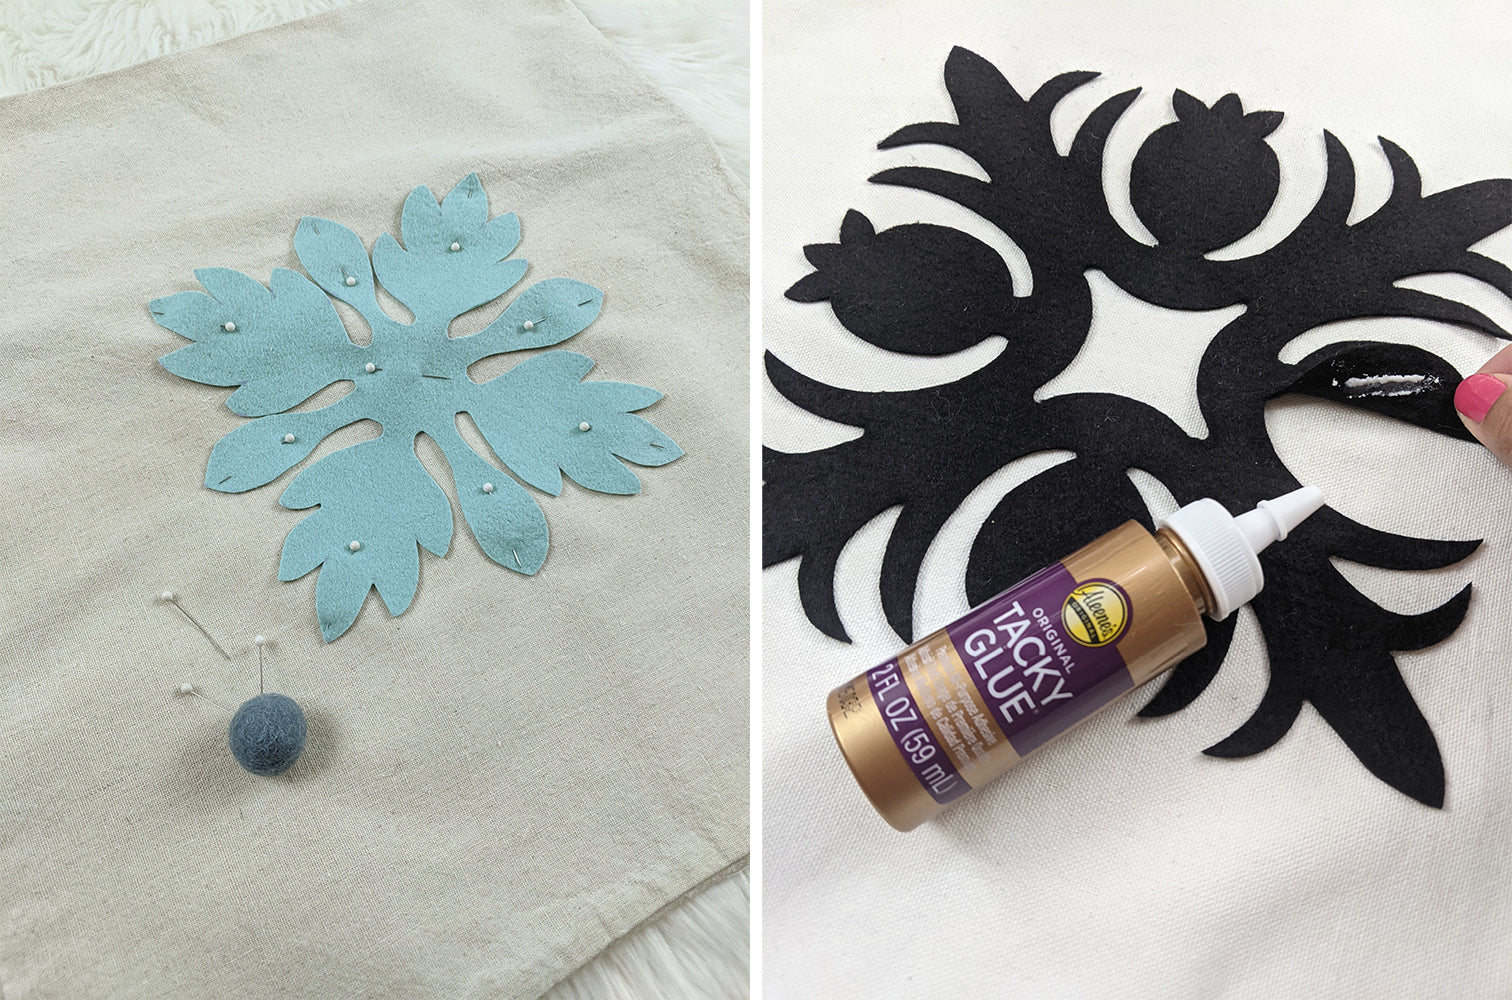 Attaching design to pillow cover